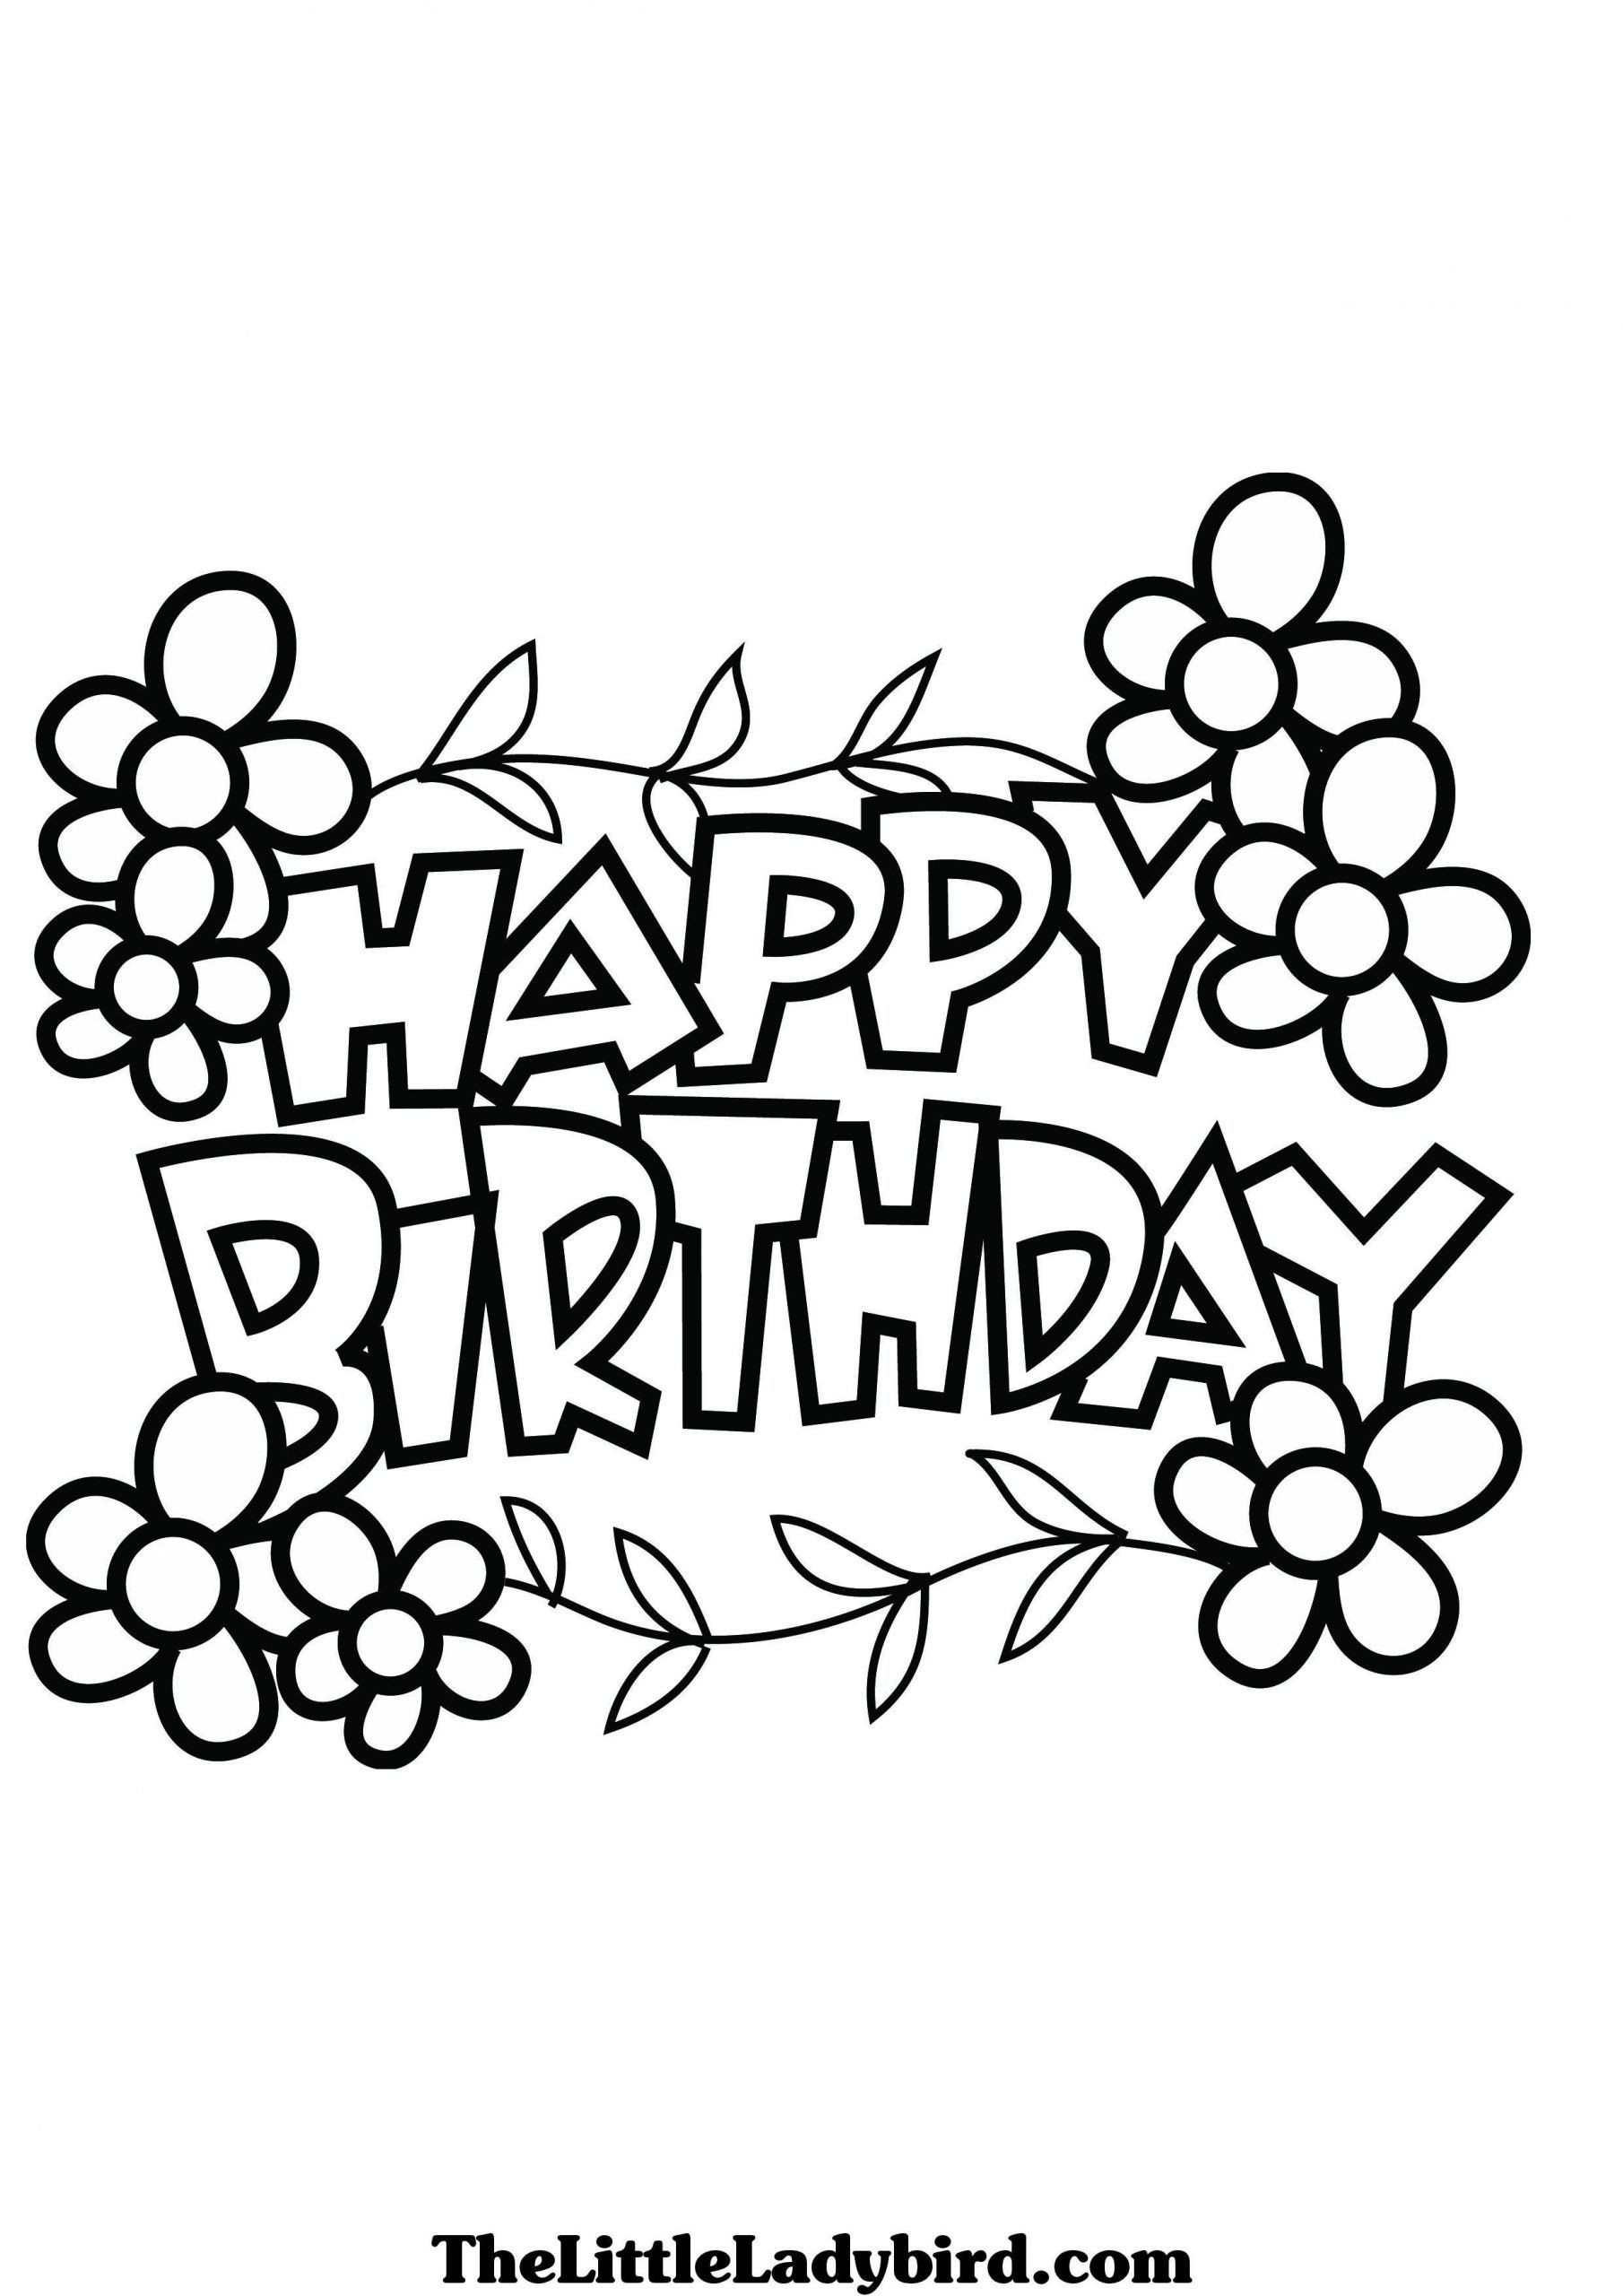 Happy 16th Birthday Coloring Pages Coloring Pages Bathroom Phenomenal My Little Happy Birthday Coloring Pages Birthday Coloring Pages Happy Birthday Printable